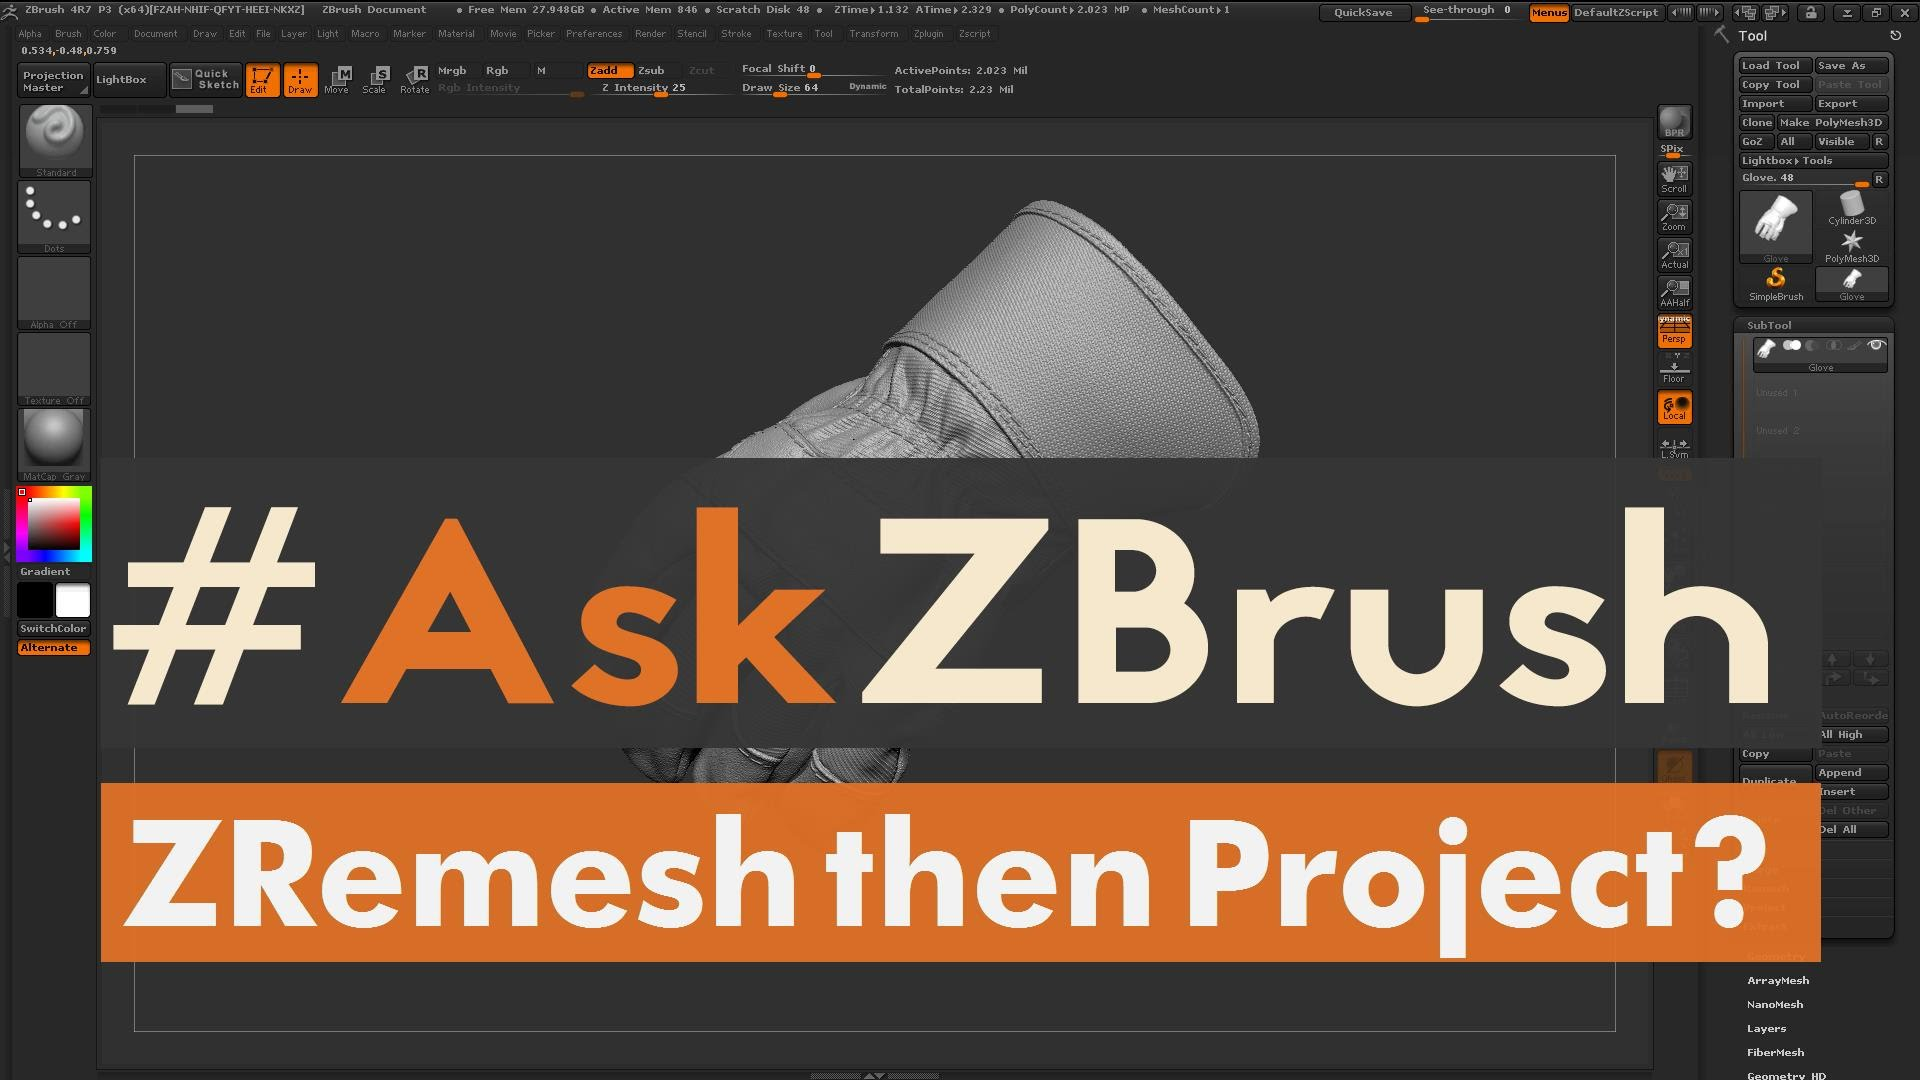 """#AskZBrush – """"How can I ZRemesh a model then transfer the details back?"""""""